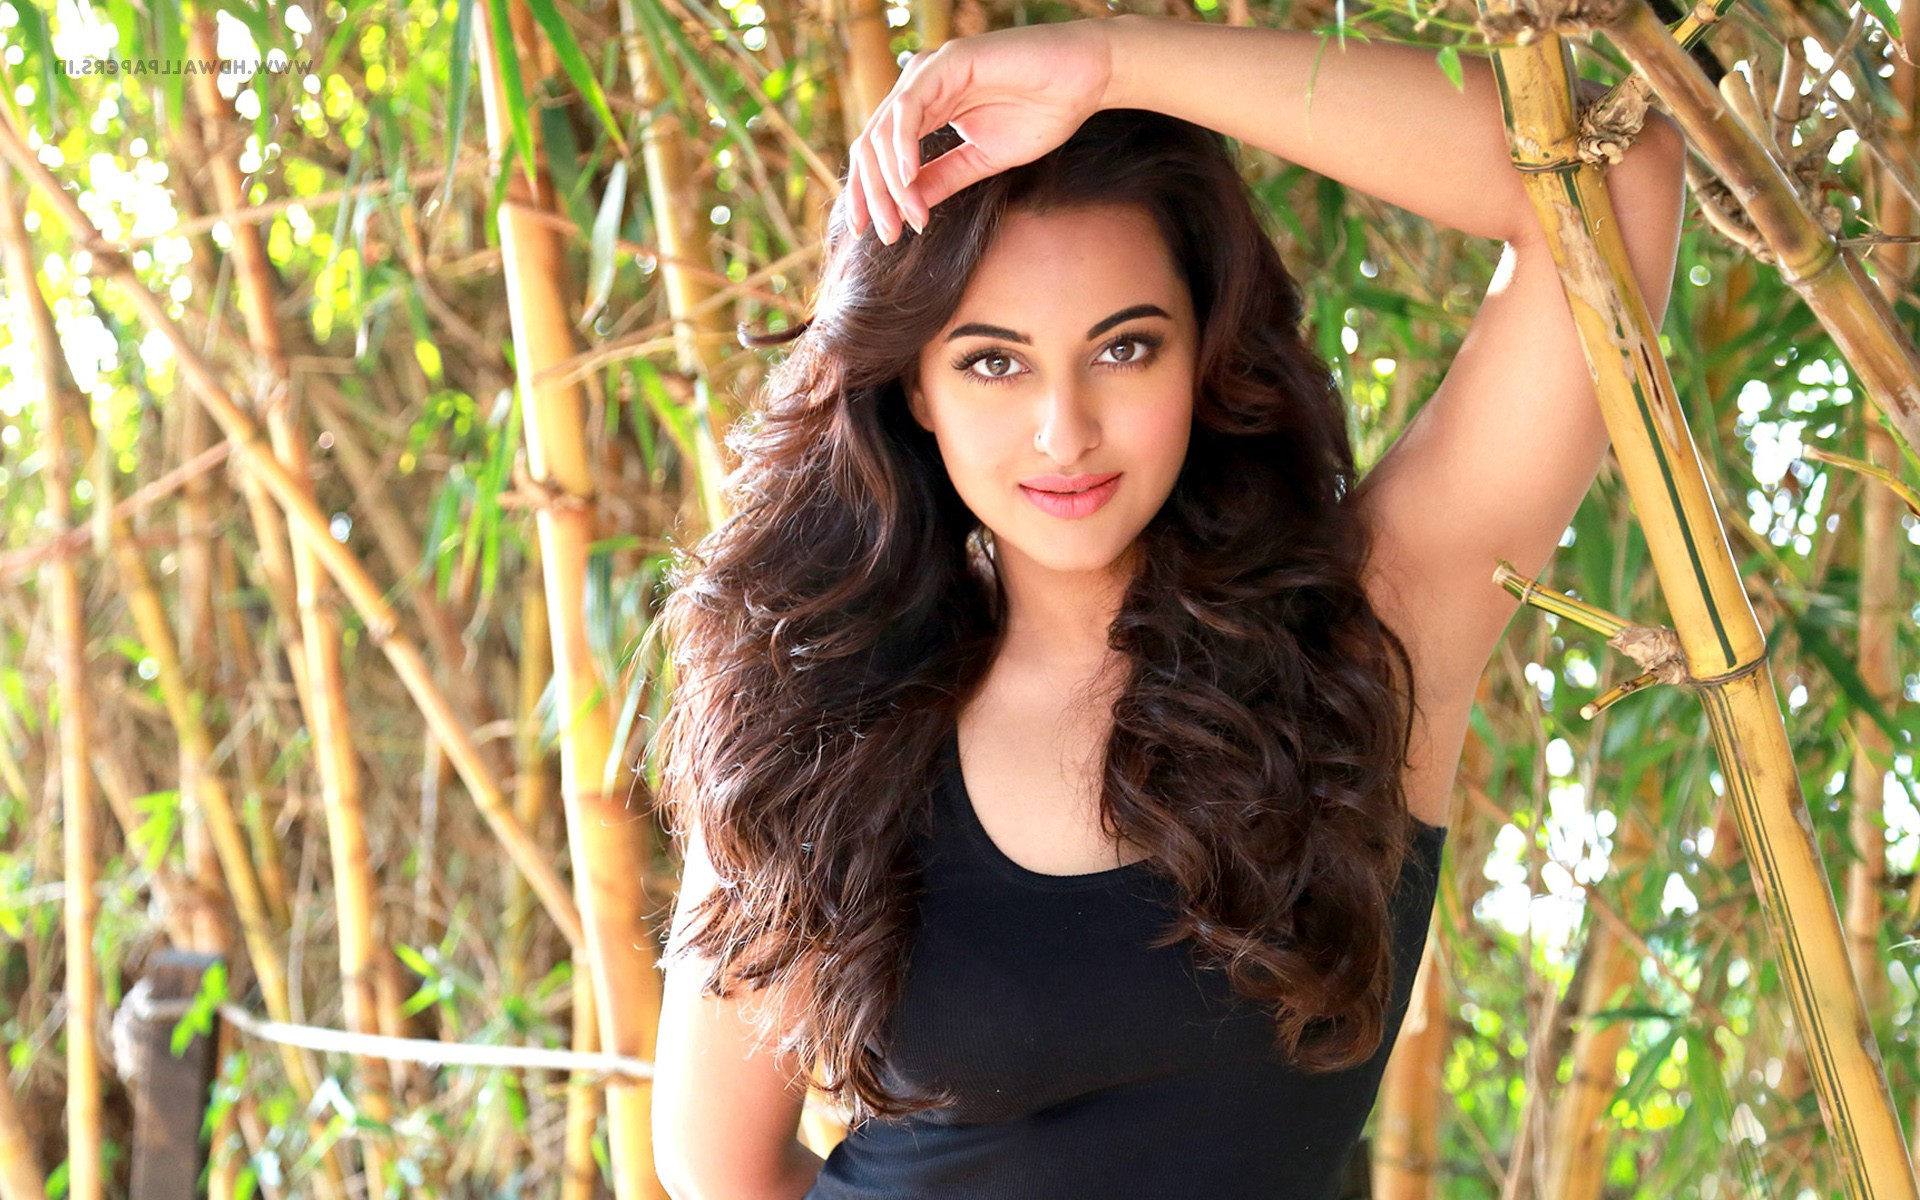 sonakshi sinha 5, hd indian celebrities, 4k wallpapers, images